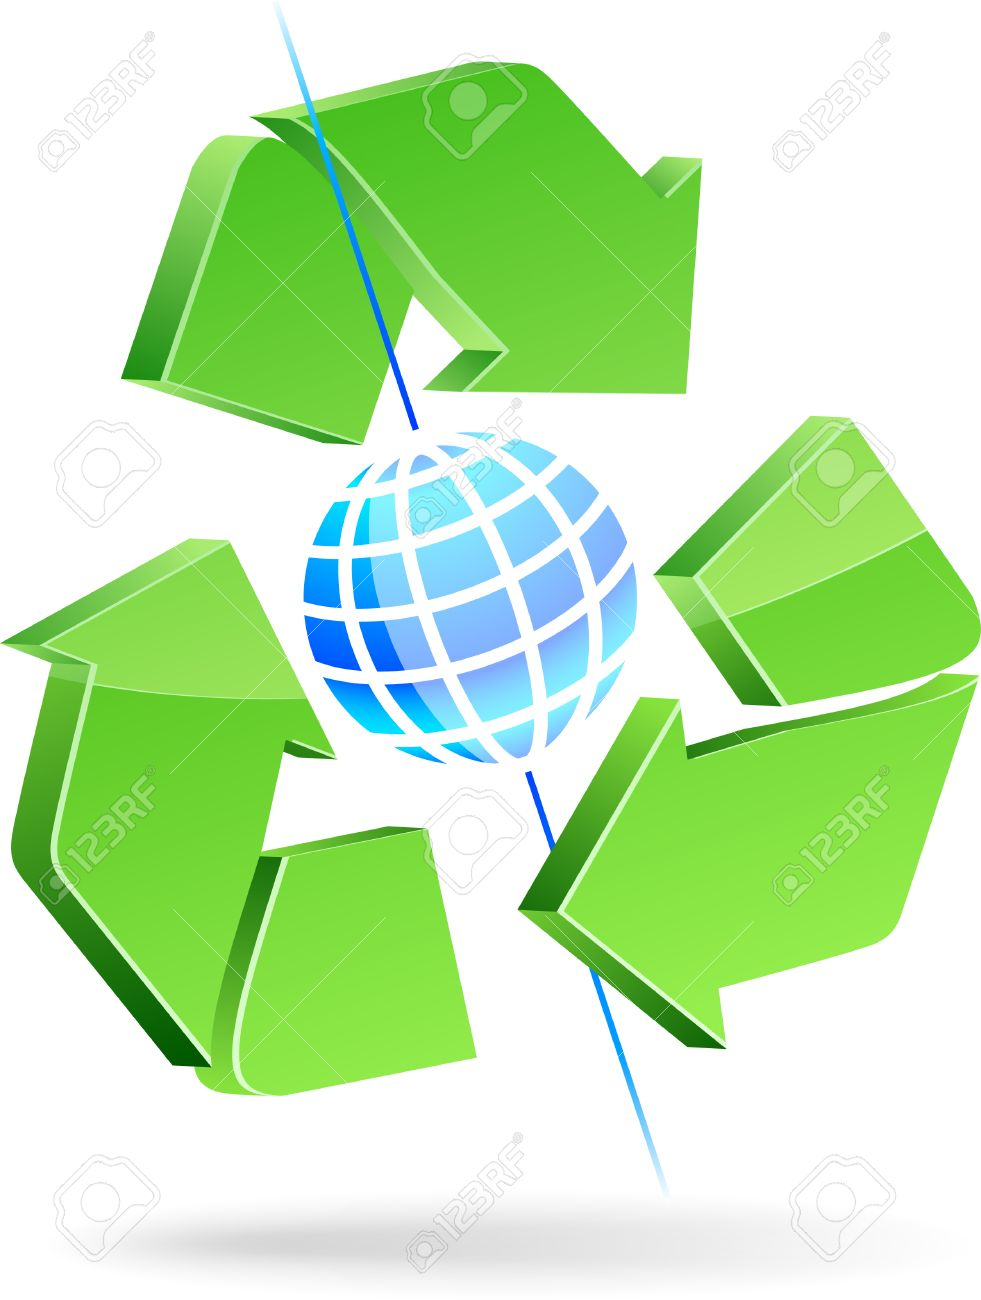 Save Earth Symbol. Vector Illustration. Royalty Free Cliparts.